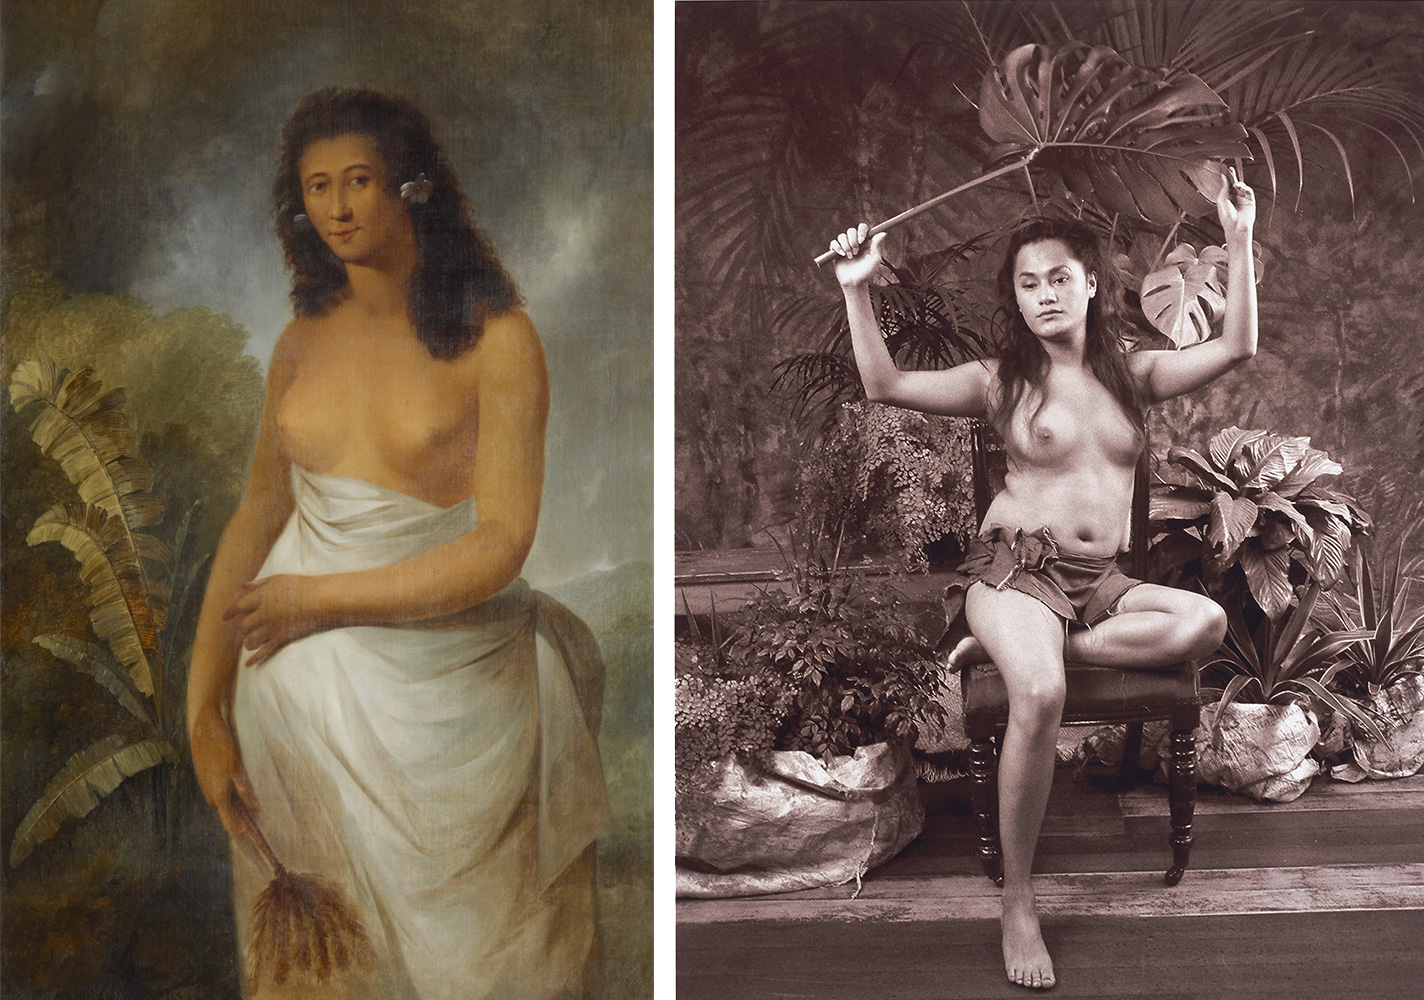 A painting of a bare-chested lady from the society islands next to a photograph of a Samoan lady half-dresses